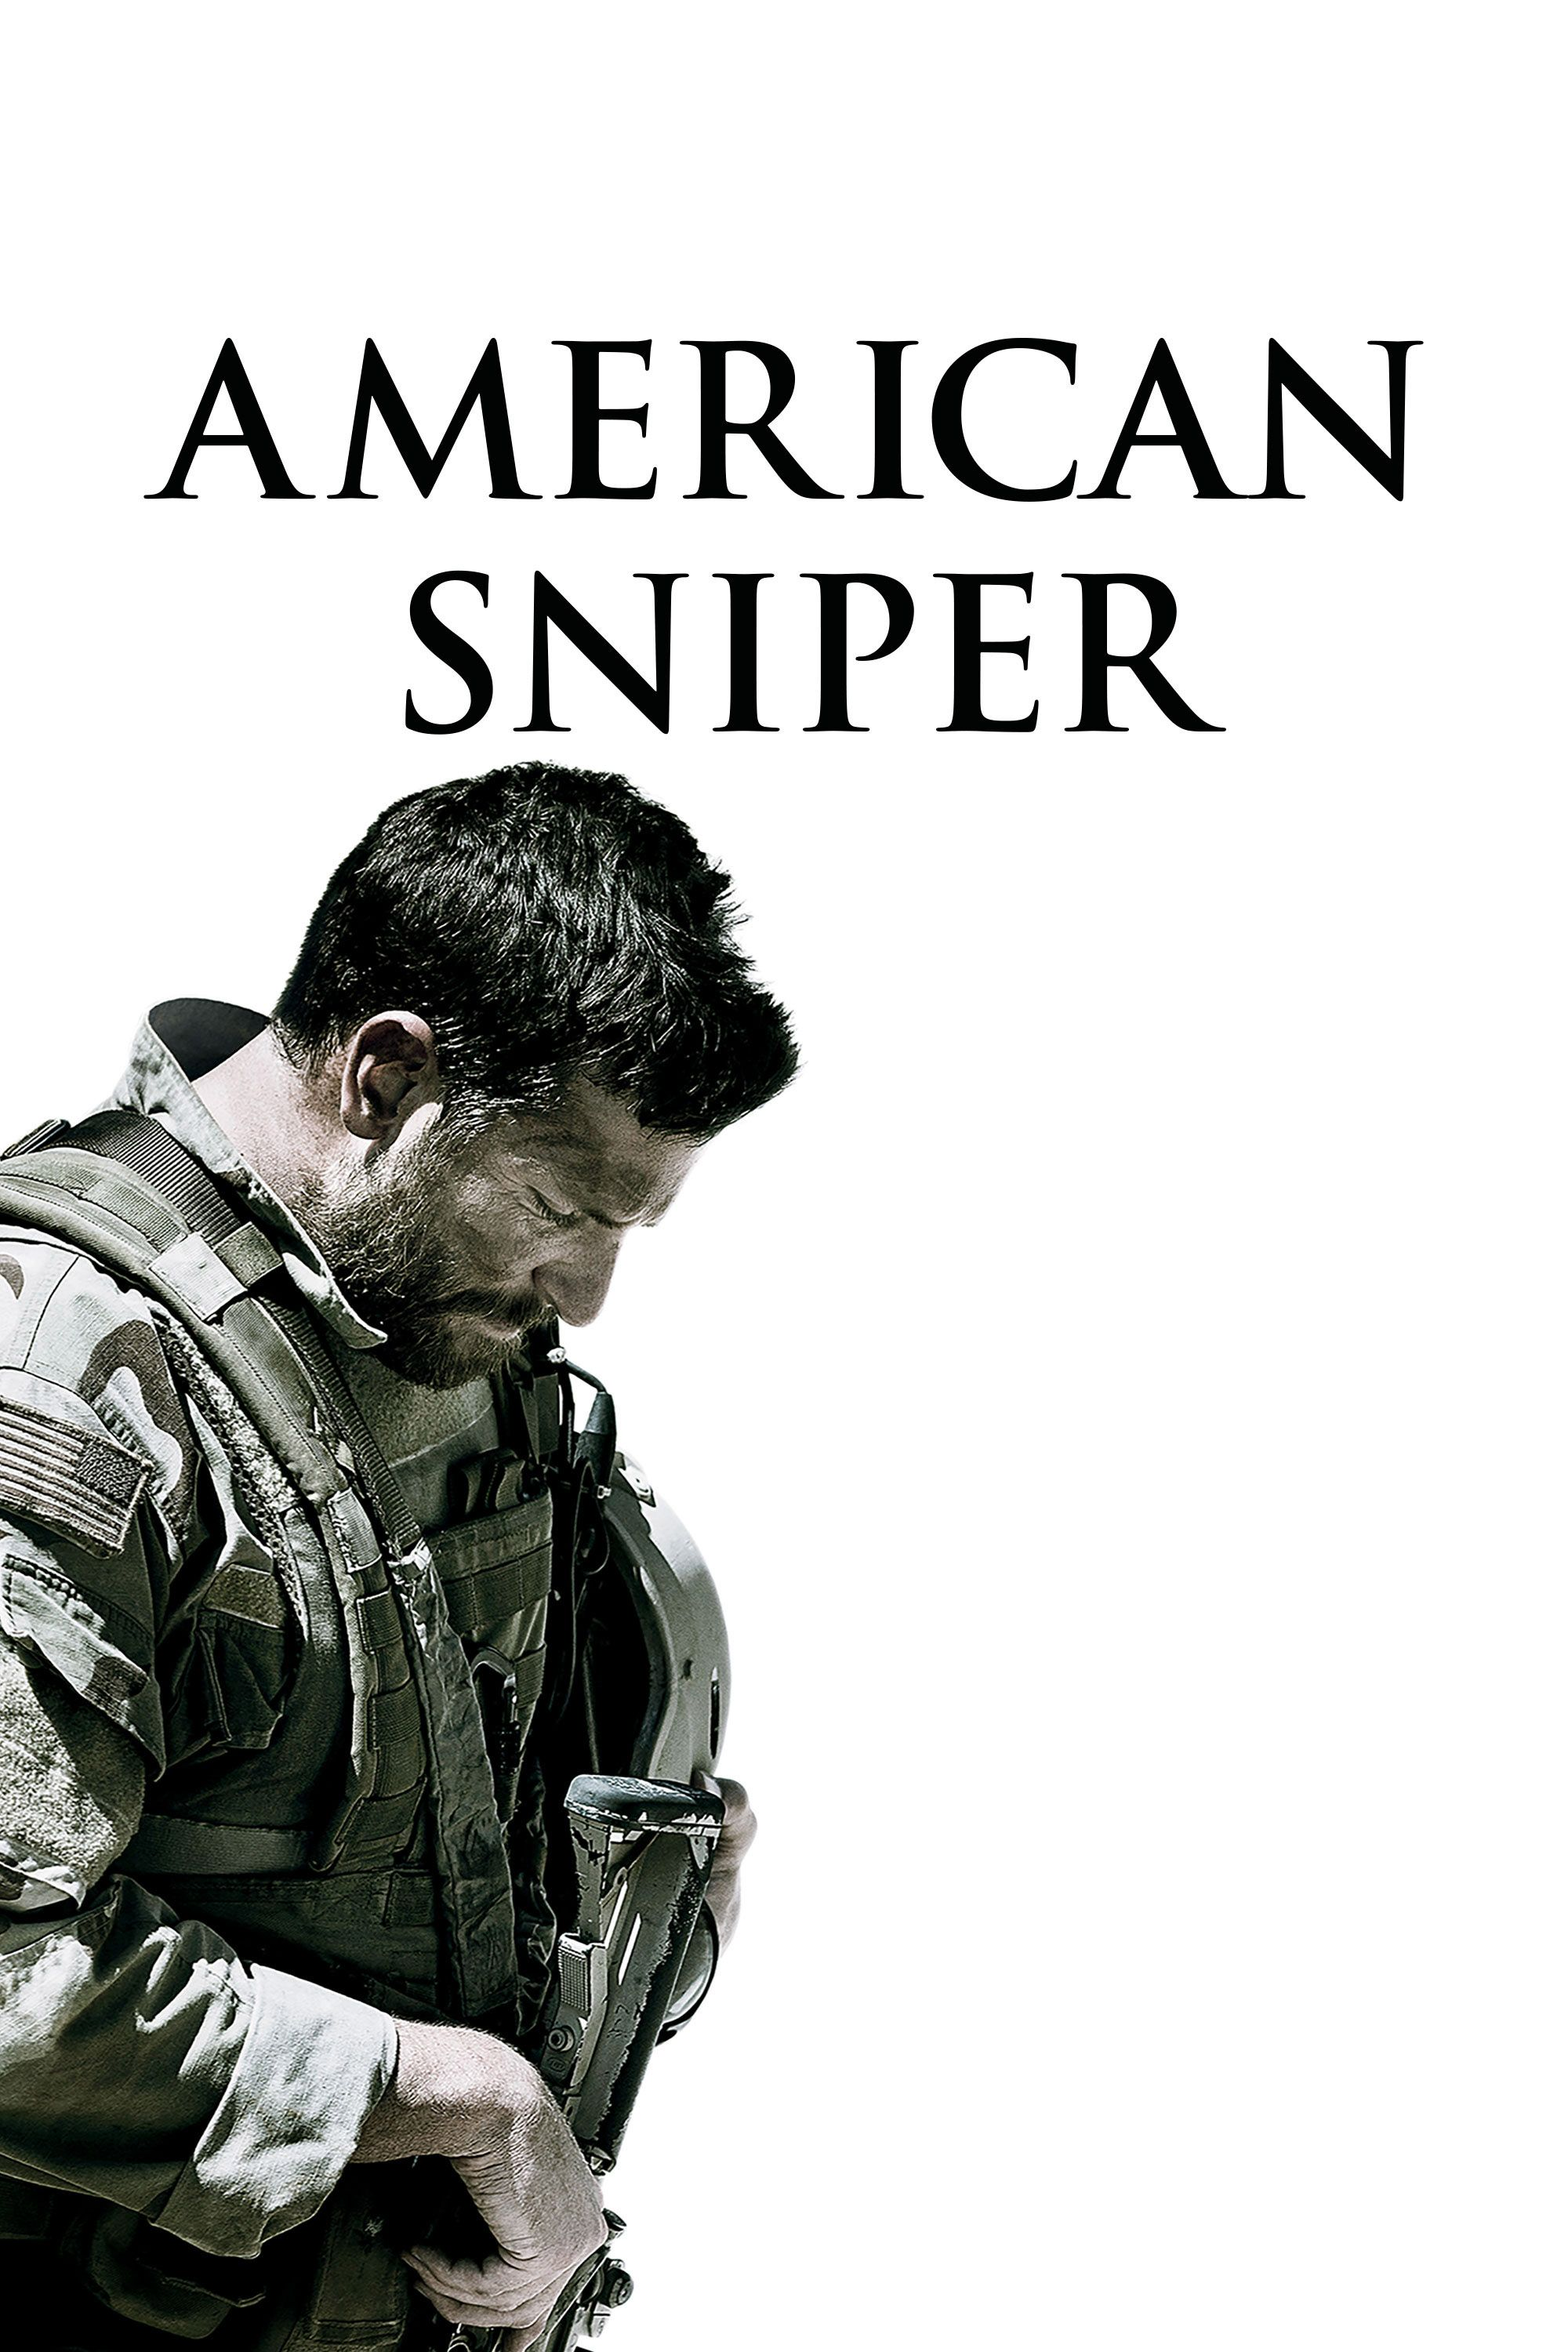 American sniper movie download in tamil dubbed